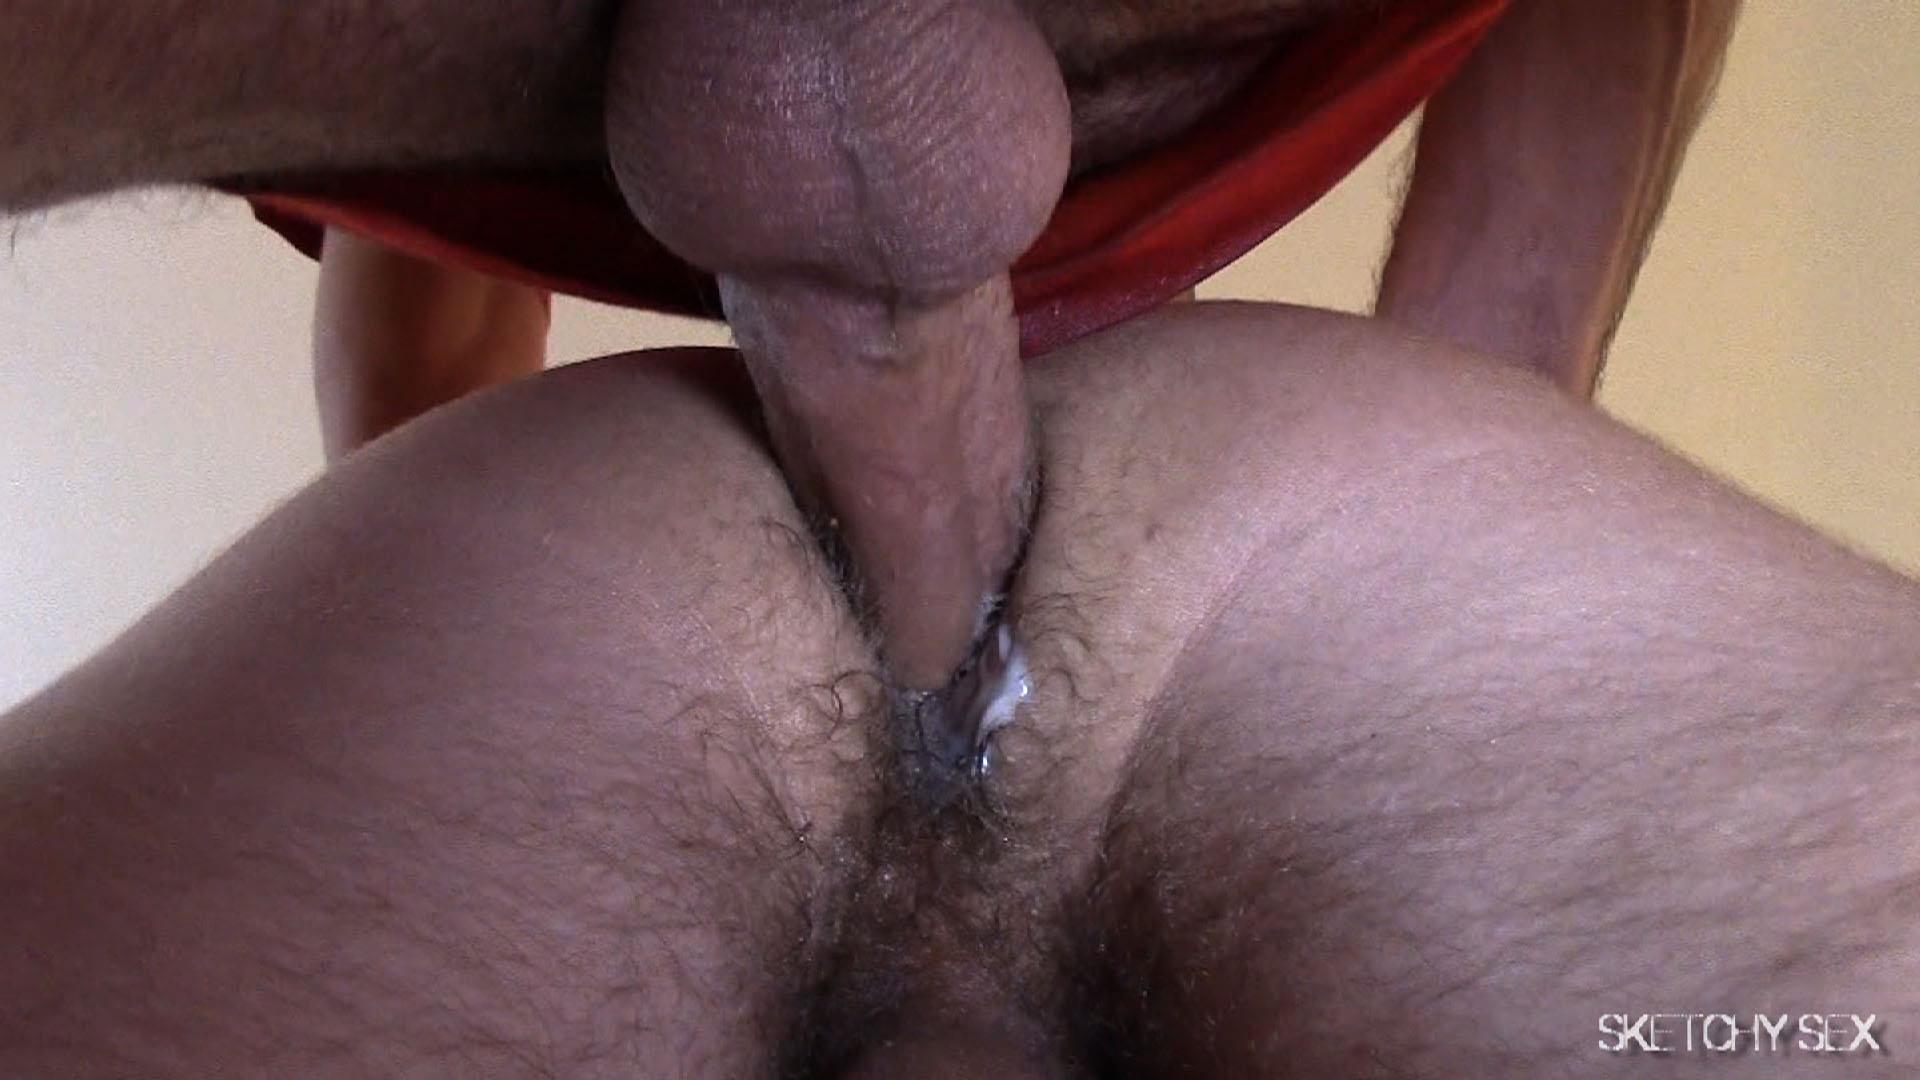 Sketchy-Sex-Nate-Getting-Fucked-Bareback-By-A-10-Inch-Craigslist-Cock-Amateur-Gay-Porn-11 Taking A 10